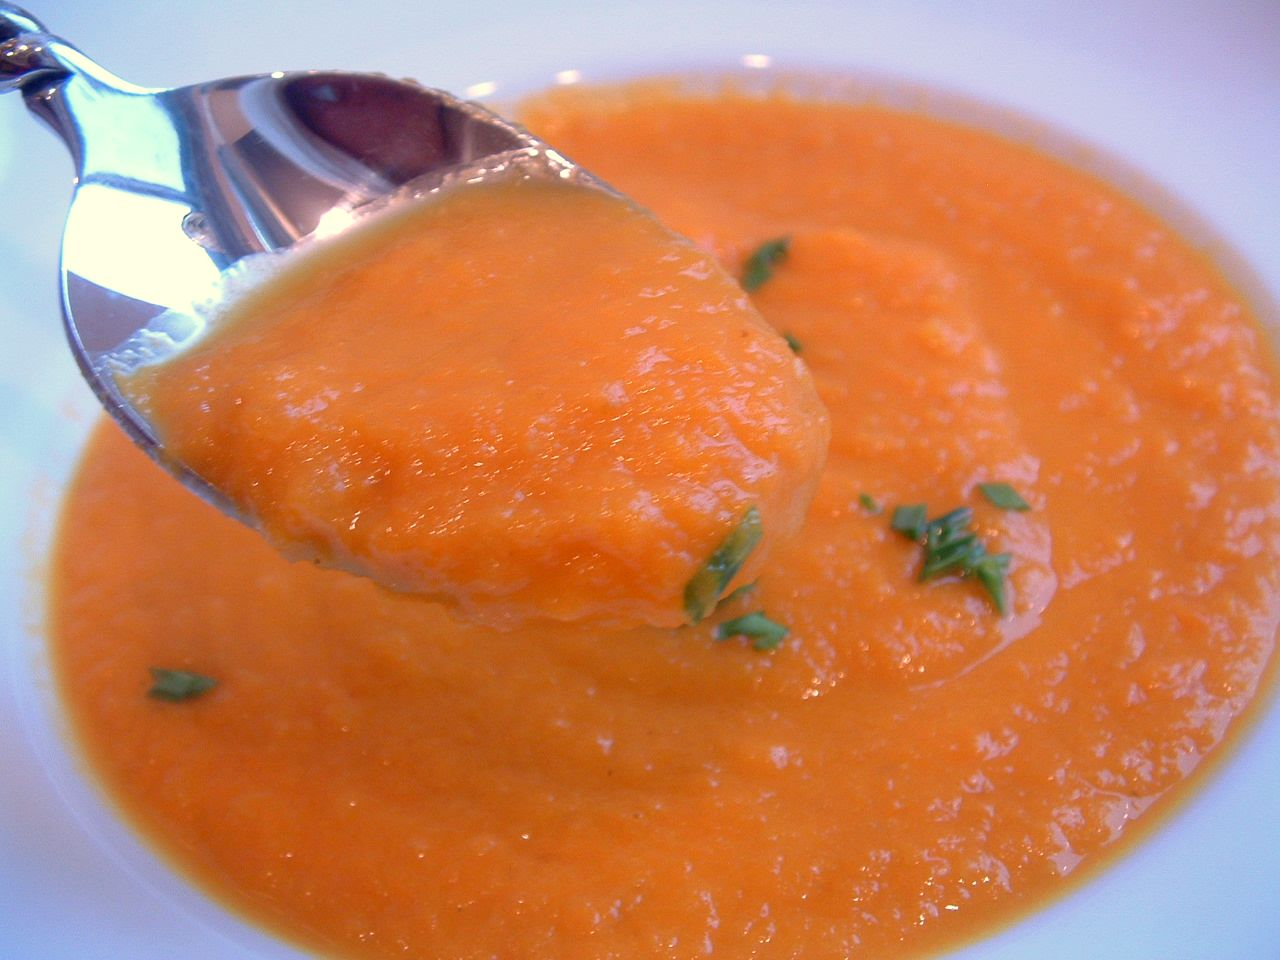 and then I took my first taste of Carrot-Ginger Soup. The miracle ...